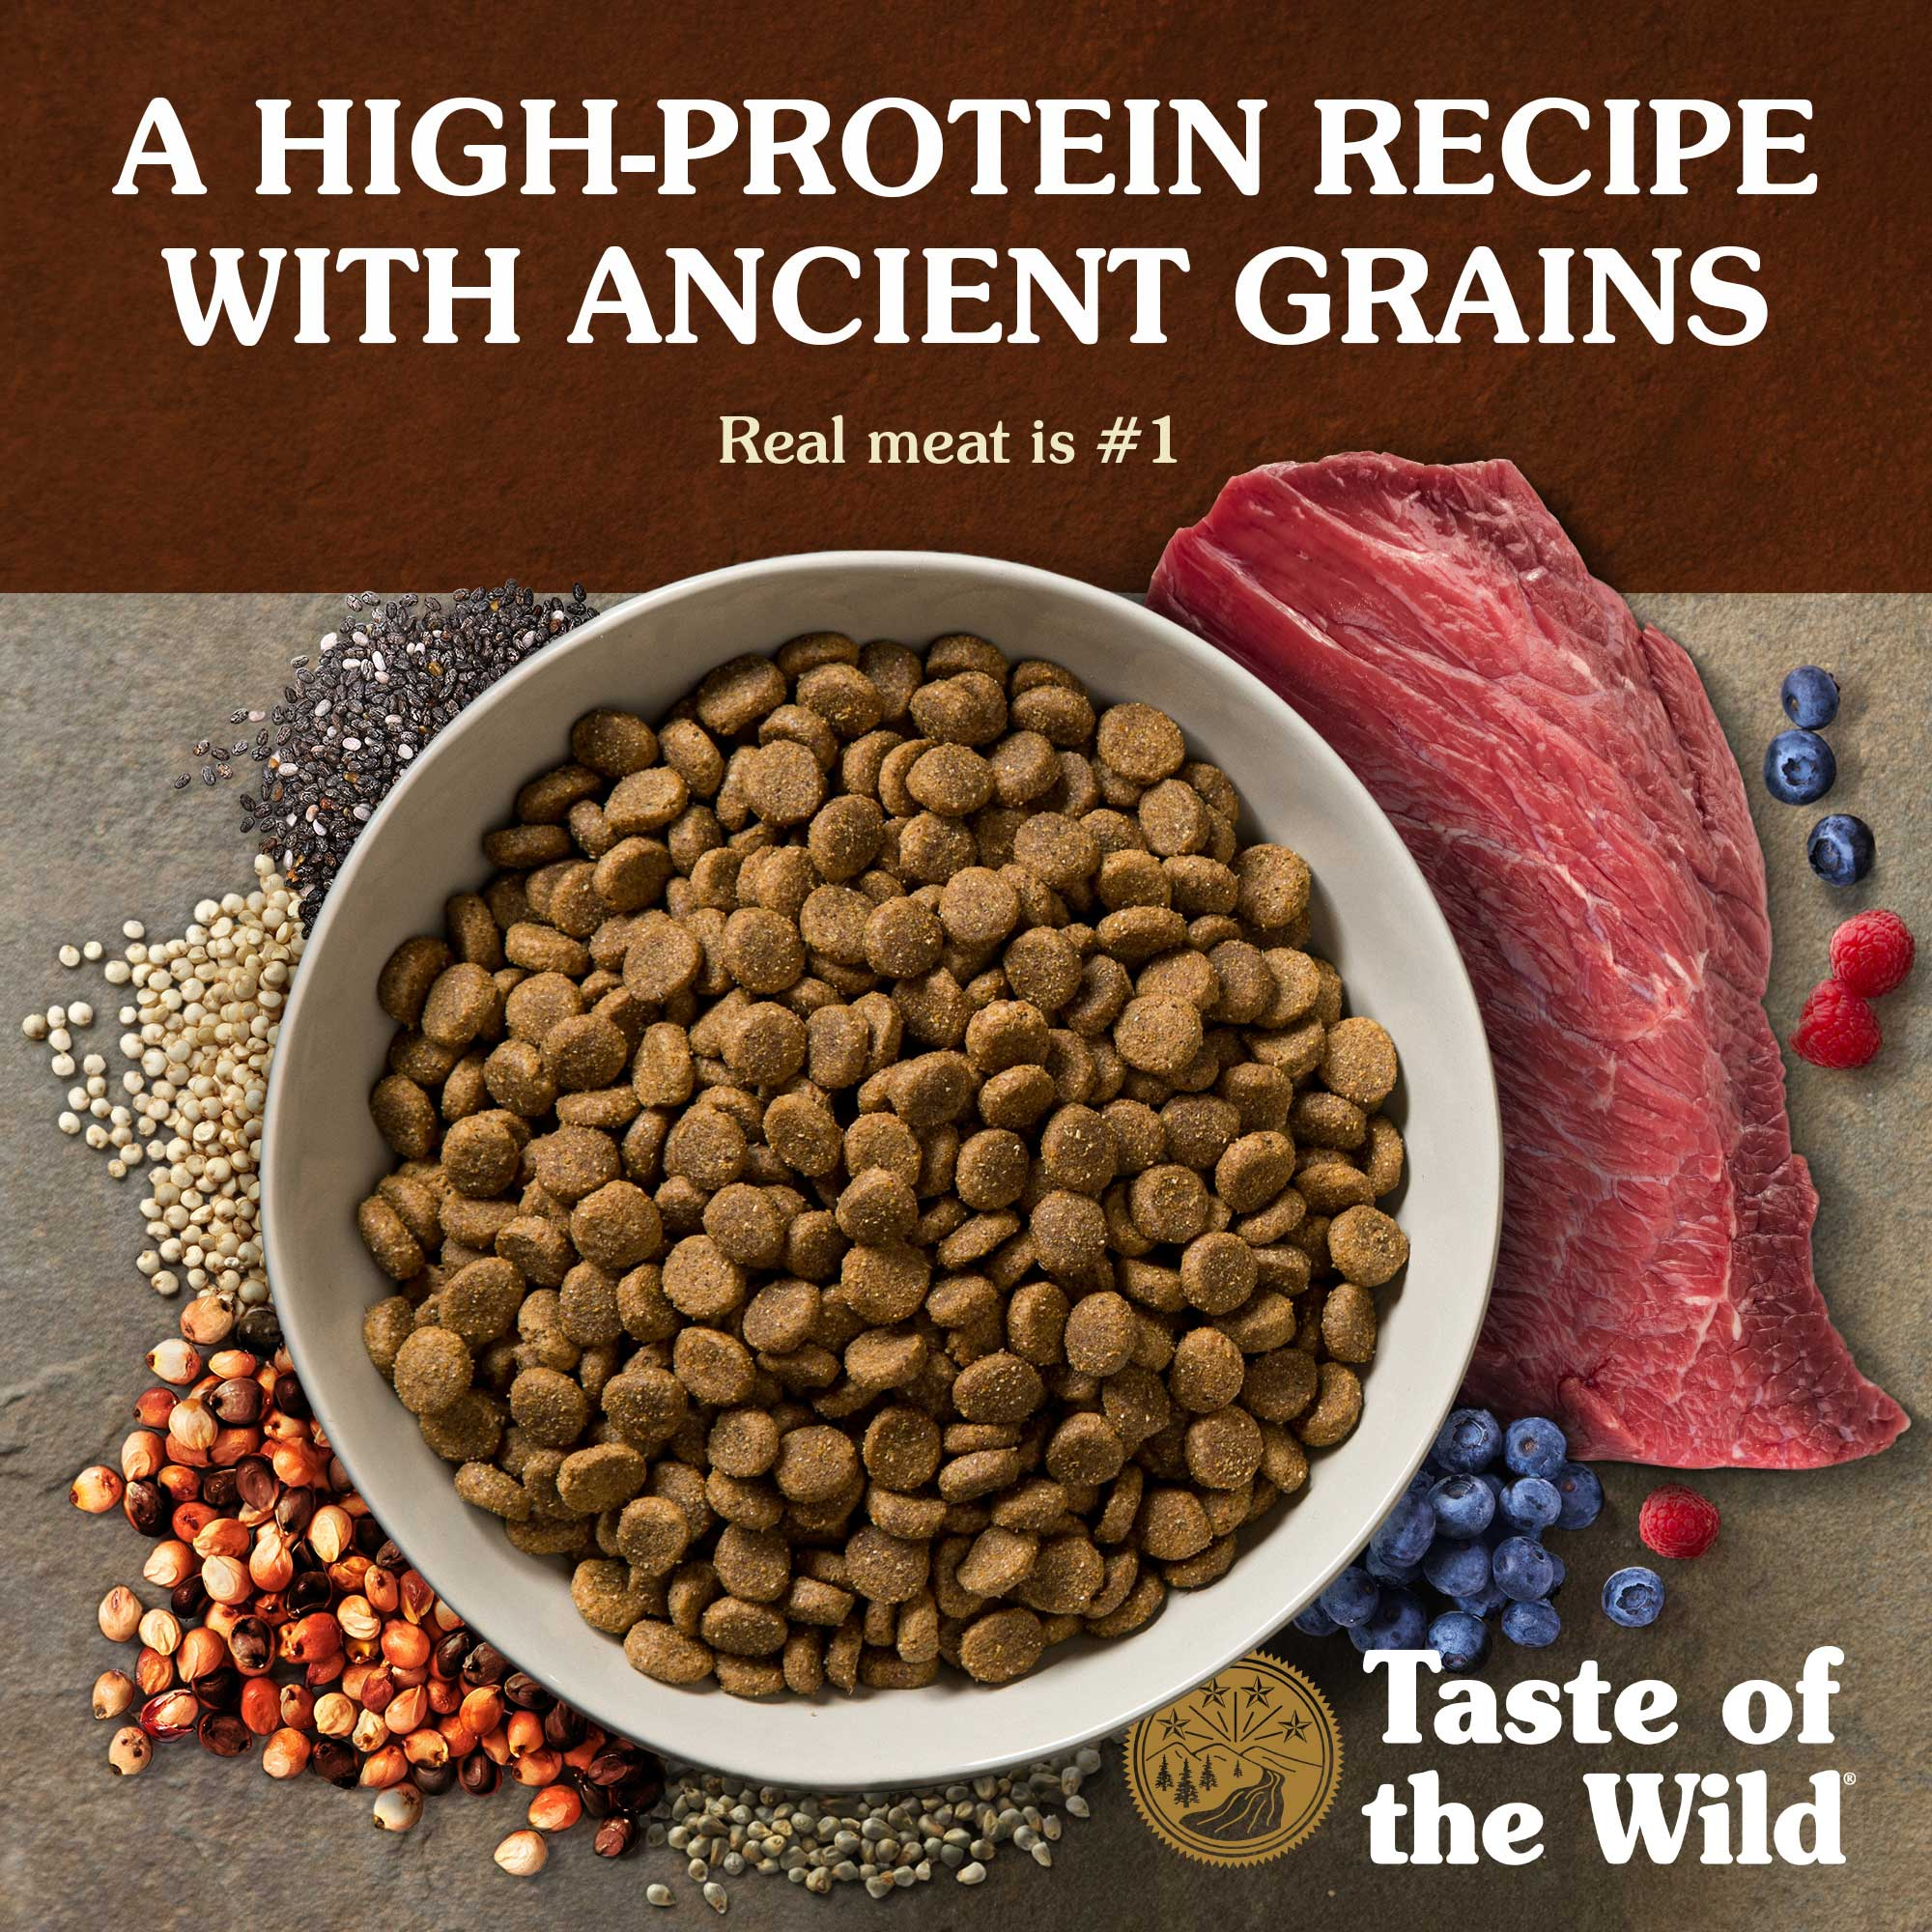 A high-protein recipe with ancient grains. Real meat is #1.